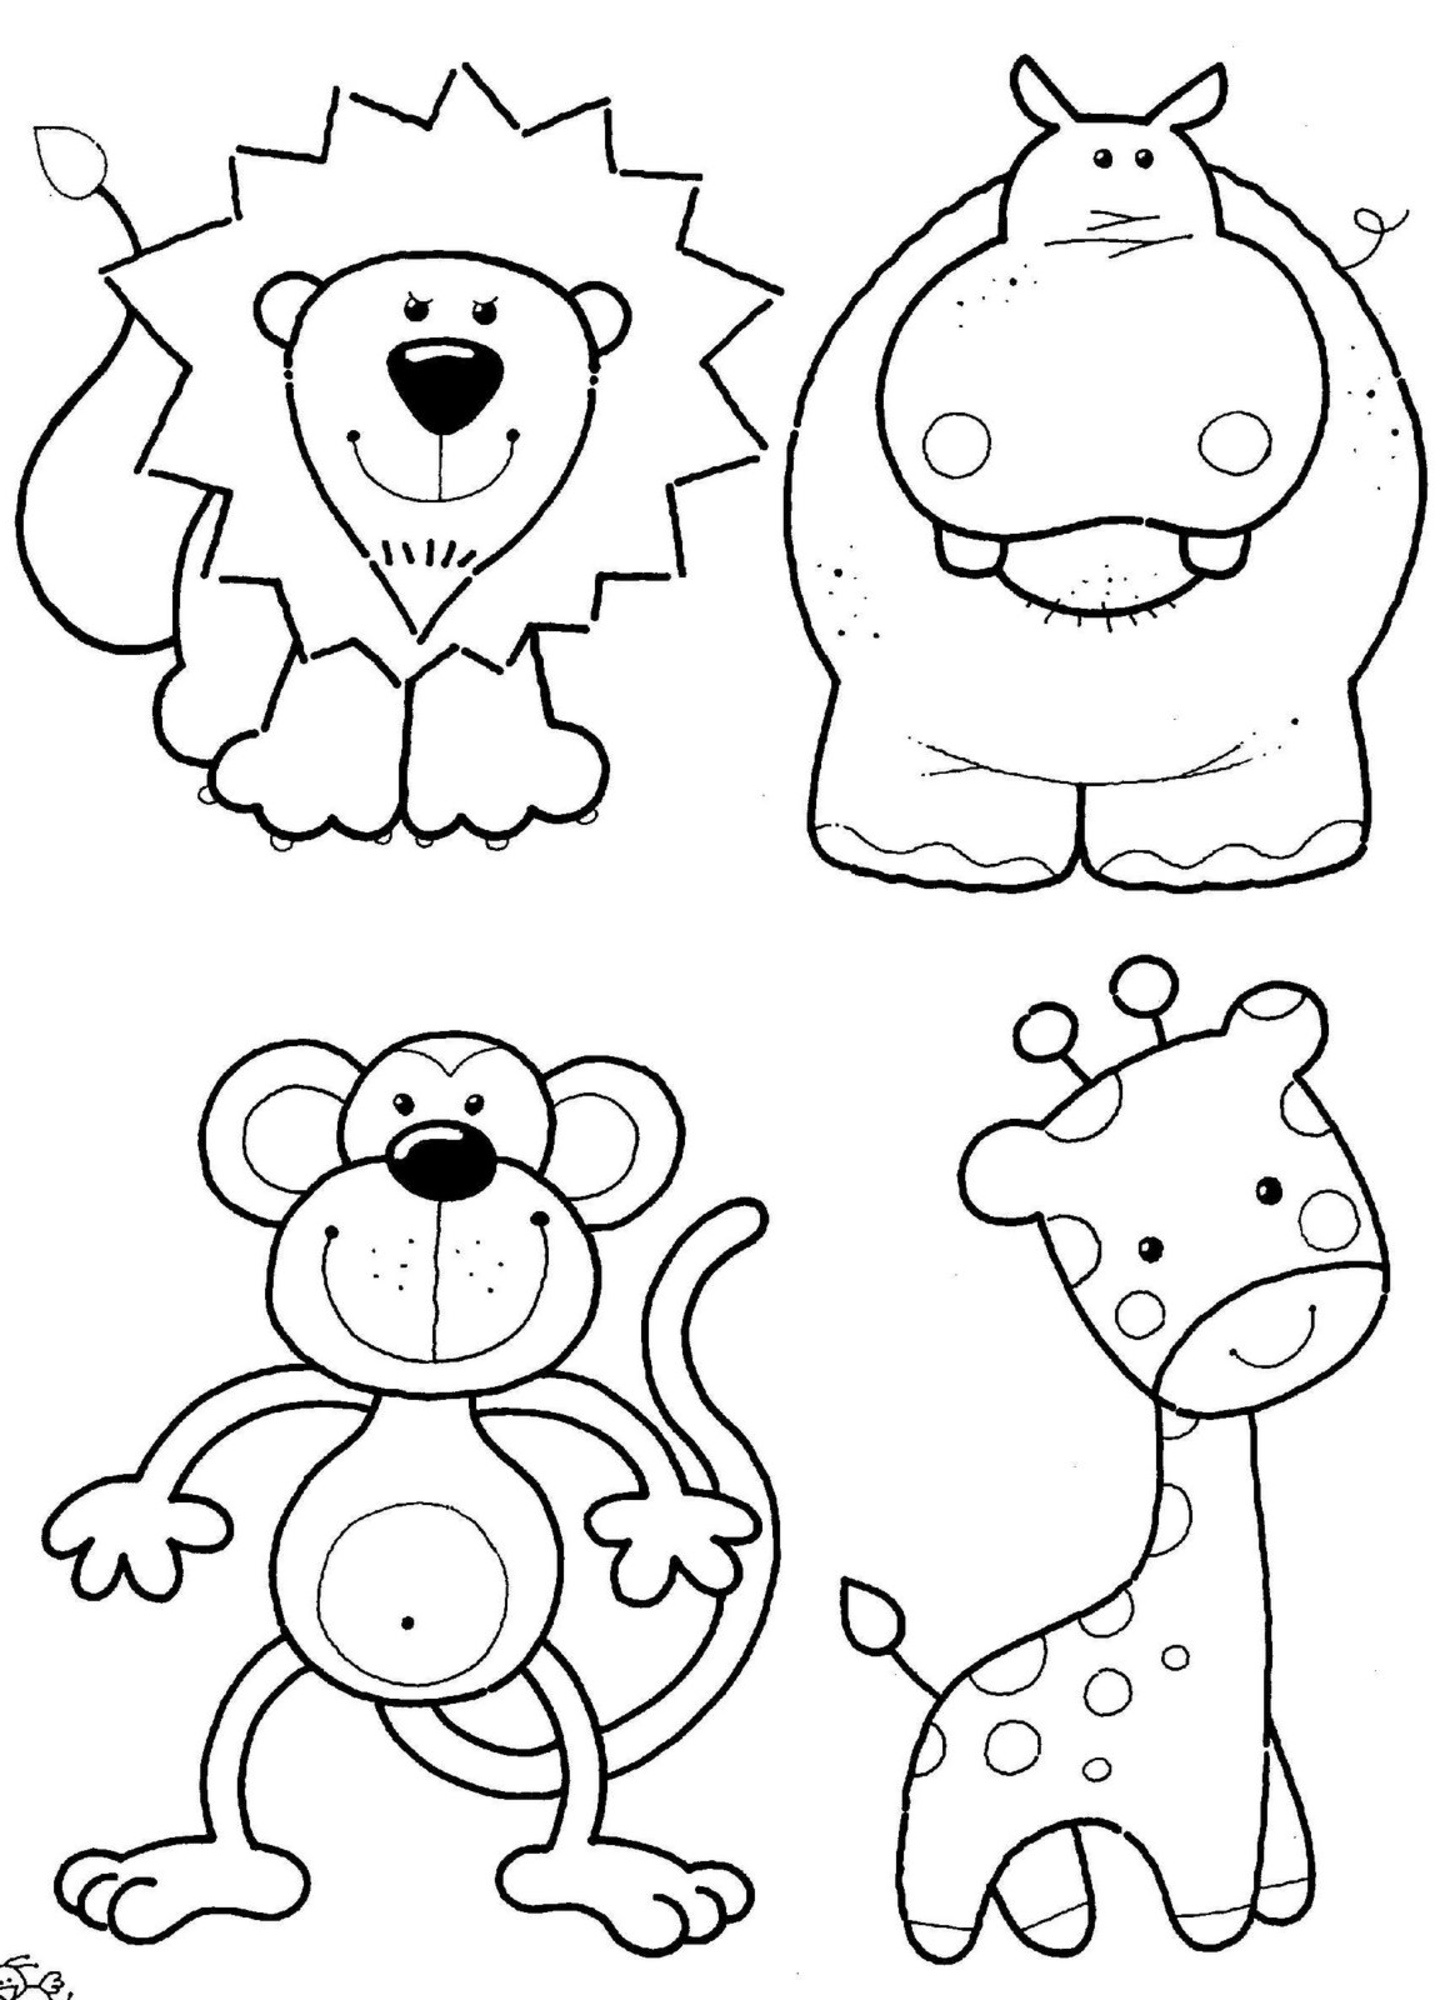 cute zoo animal coloring pages zebra zoo wild animals miss kate cute coloring page coloring pages zoo animal cute